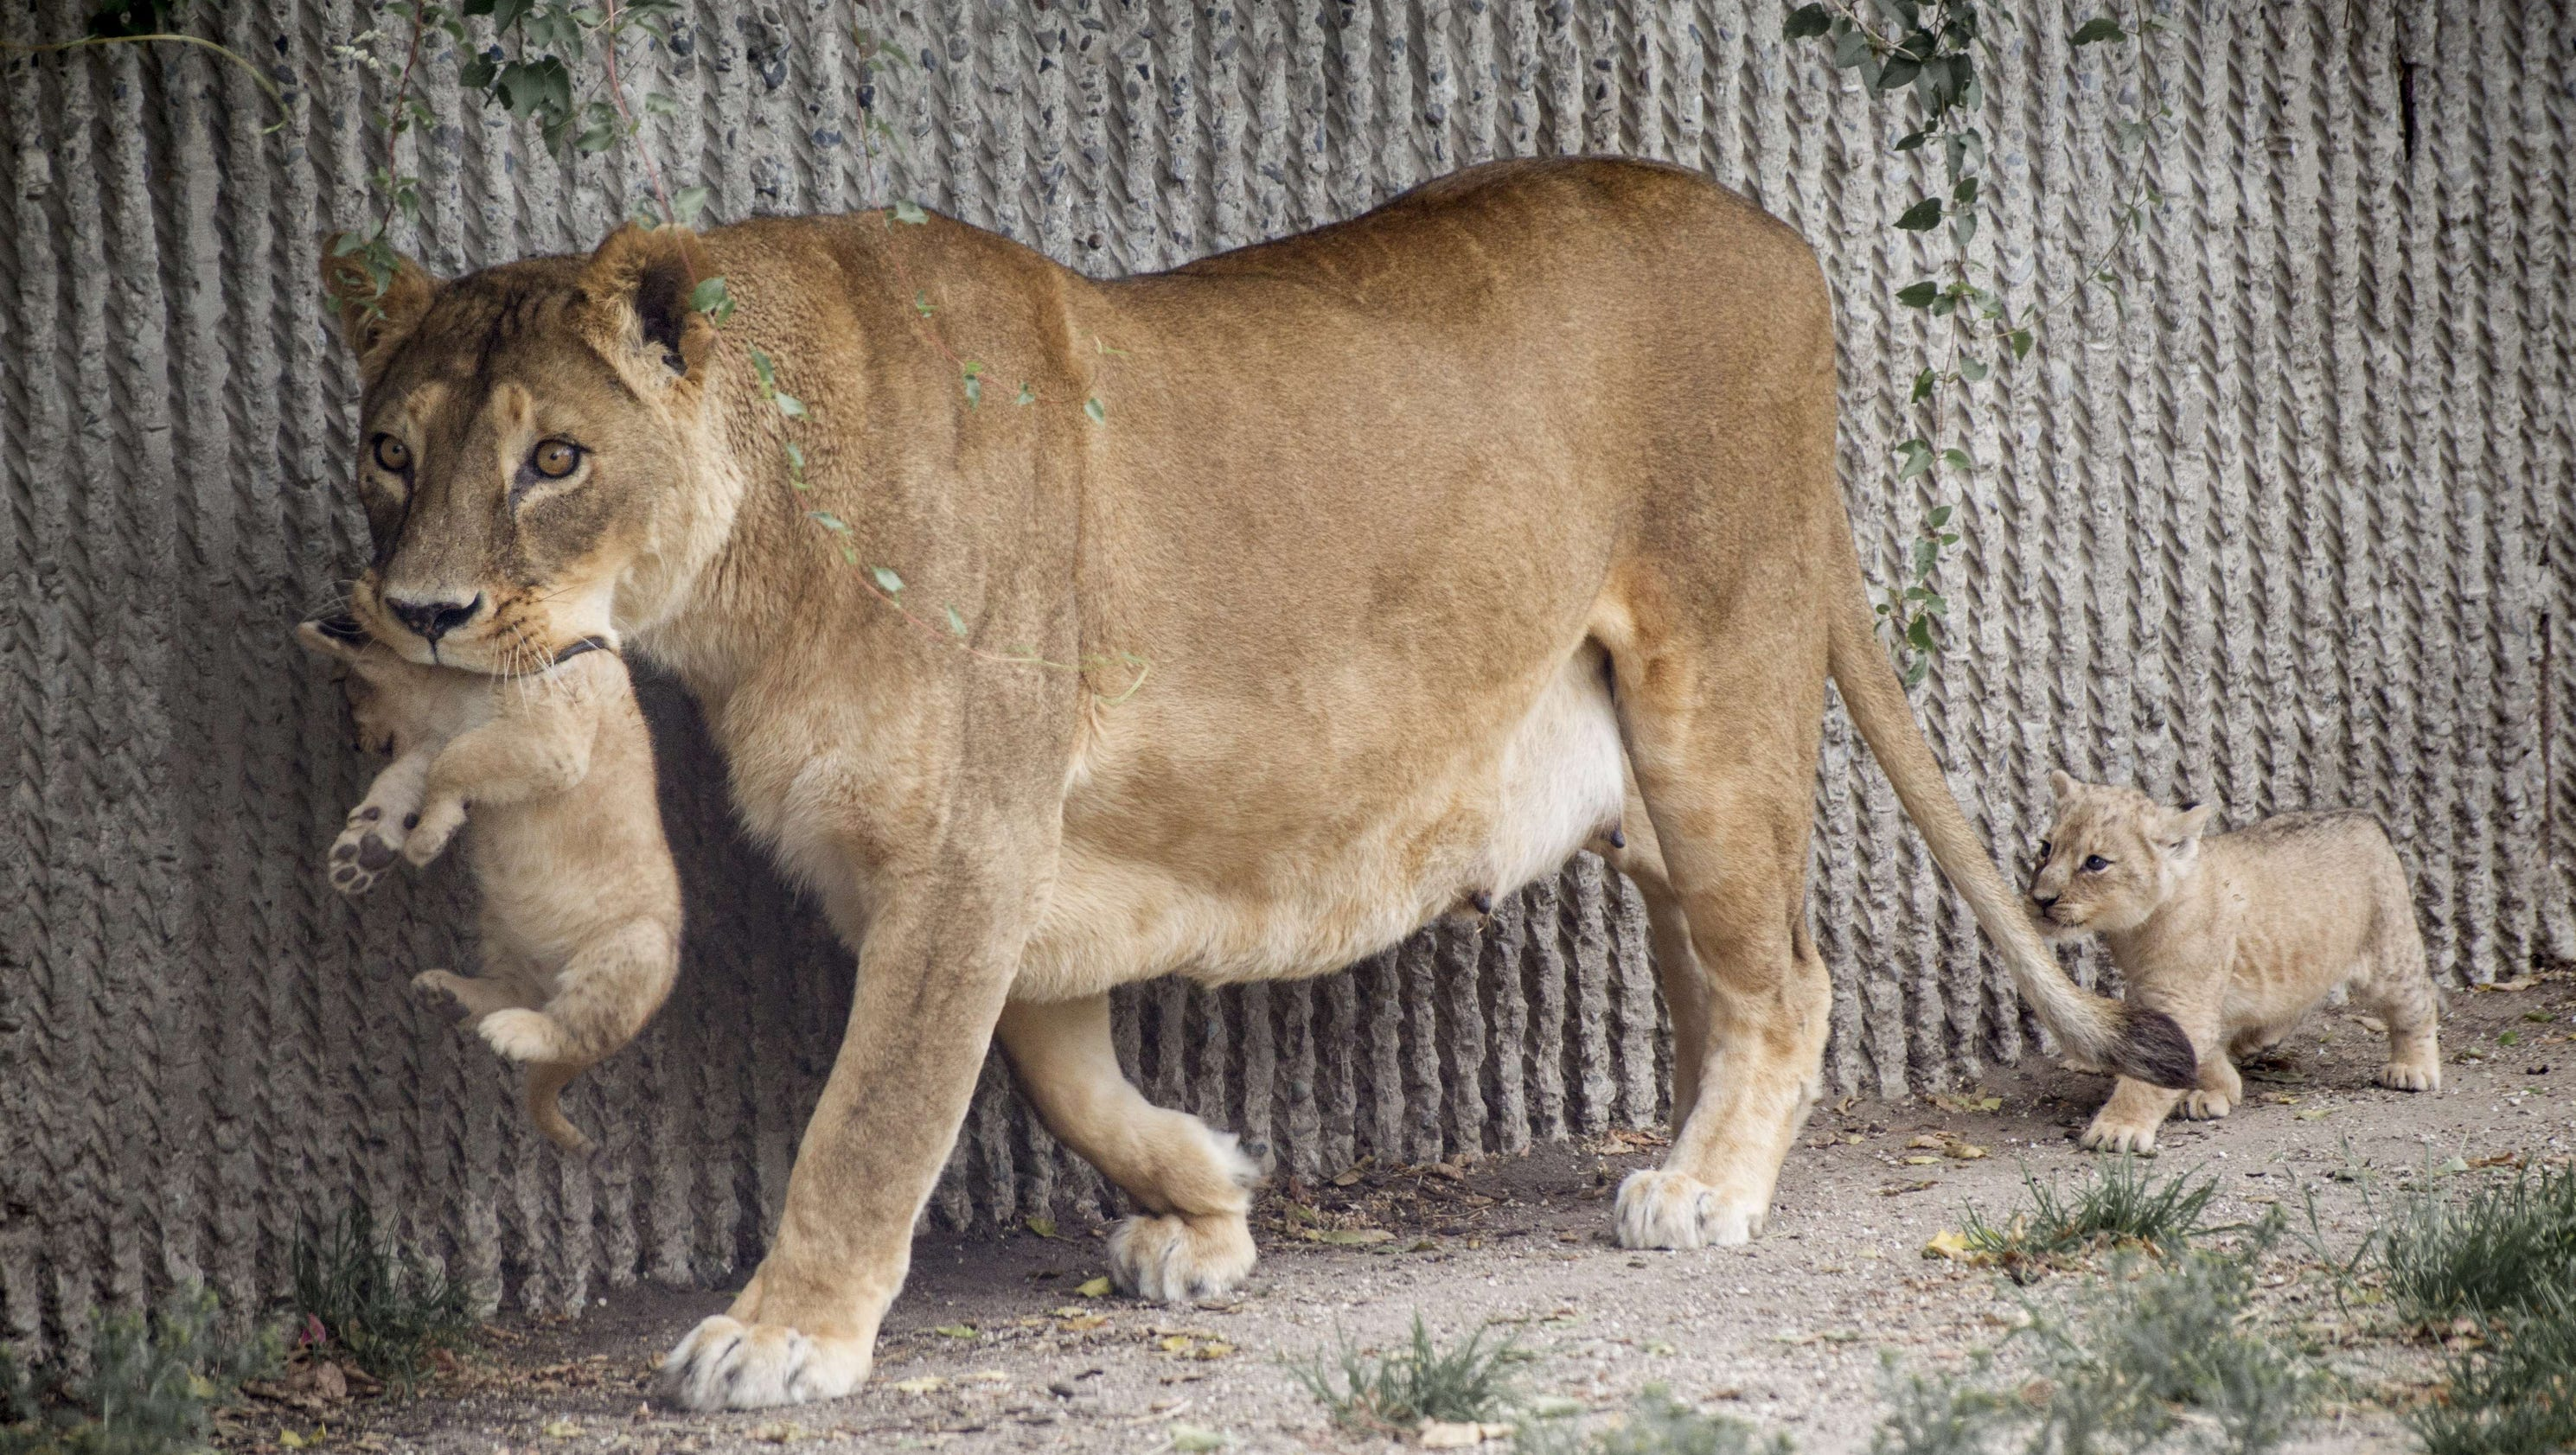 story news world danish zoo plans publicly dissect lion